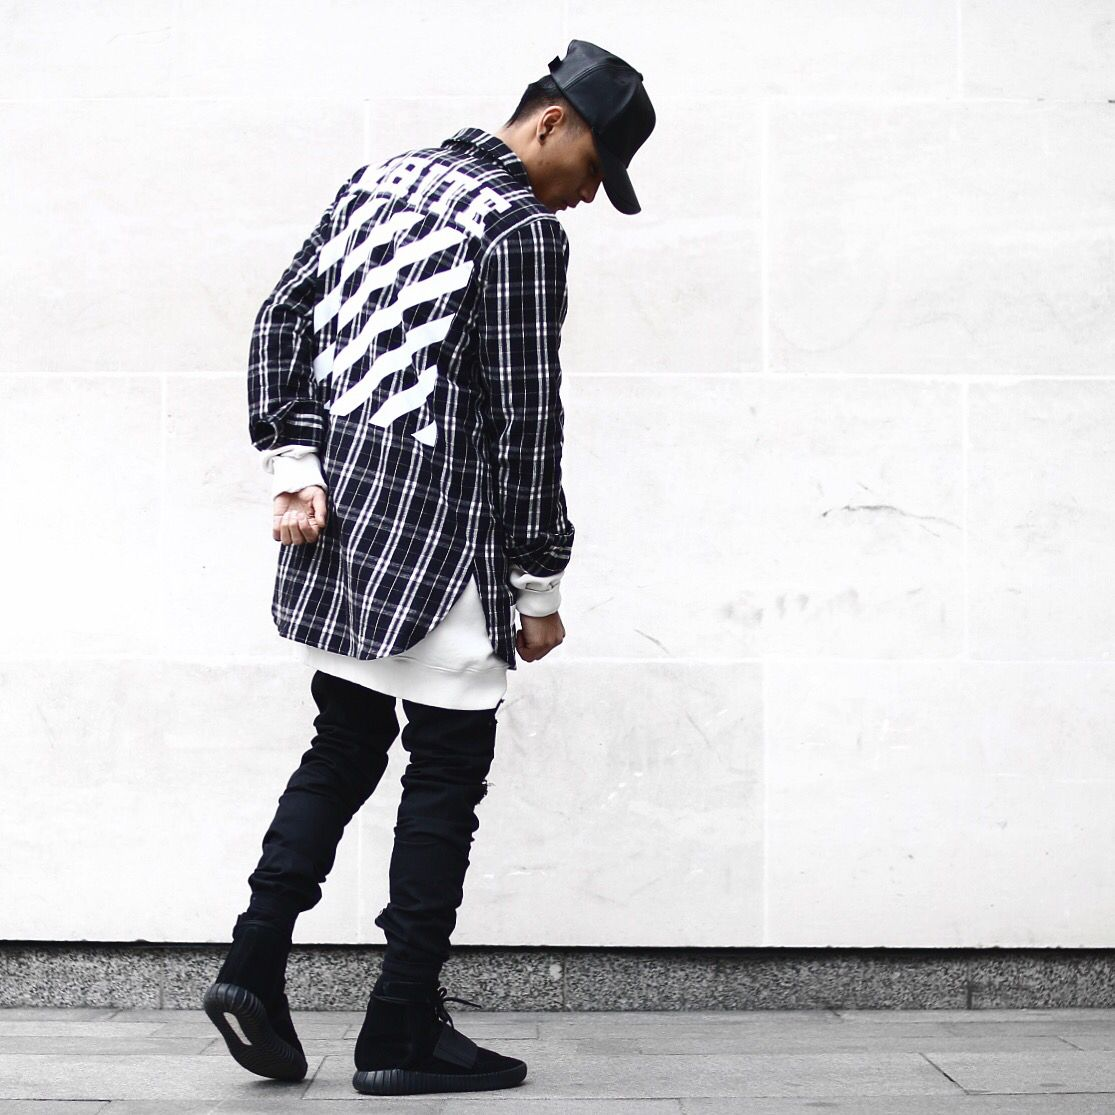 Flannel outfit ideas men  Off White  O F F W H I T E  Pinterest  Street Fashion and Menus